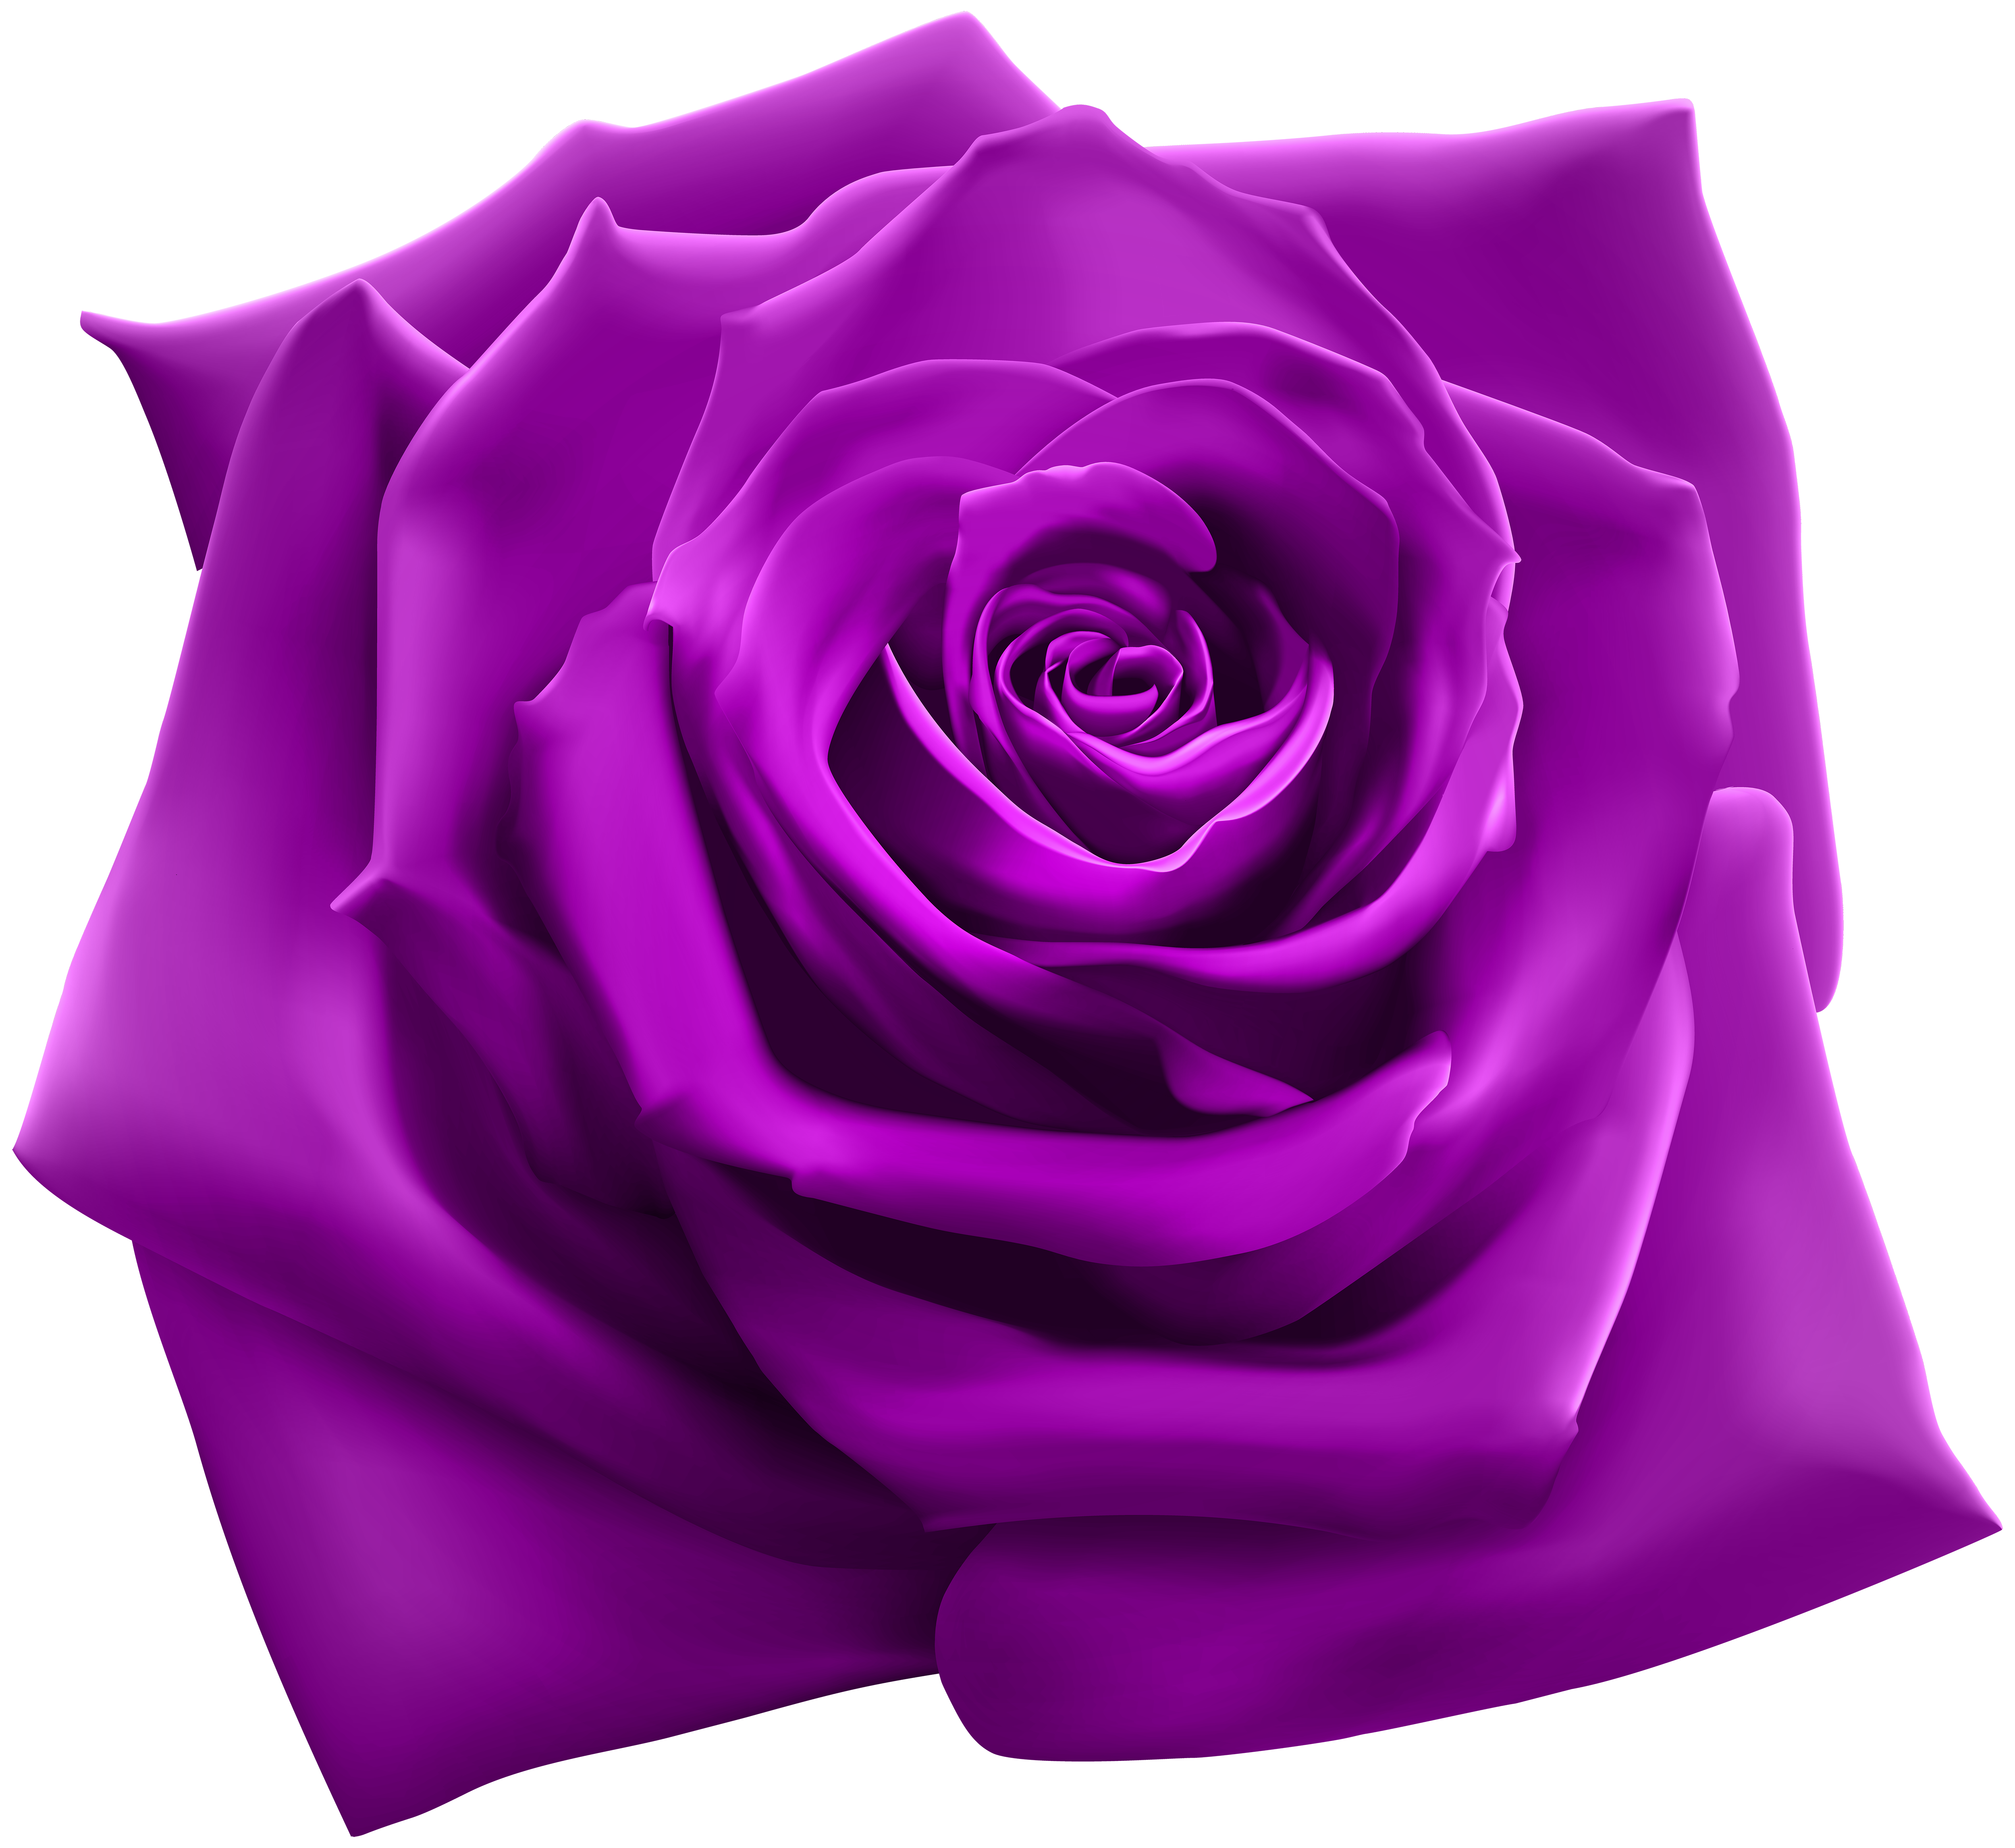 Purple rose png. Clipart image gallery yopriceville